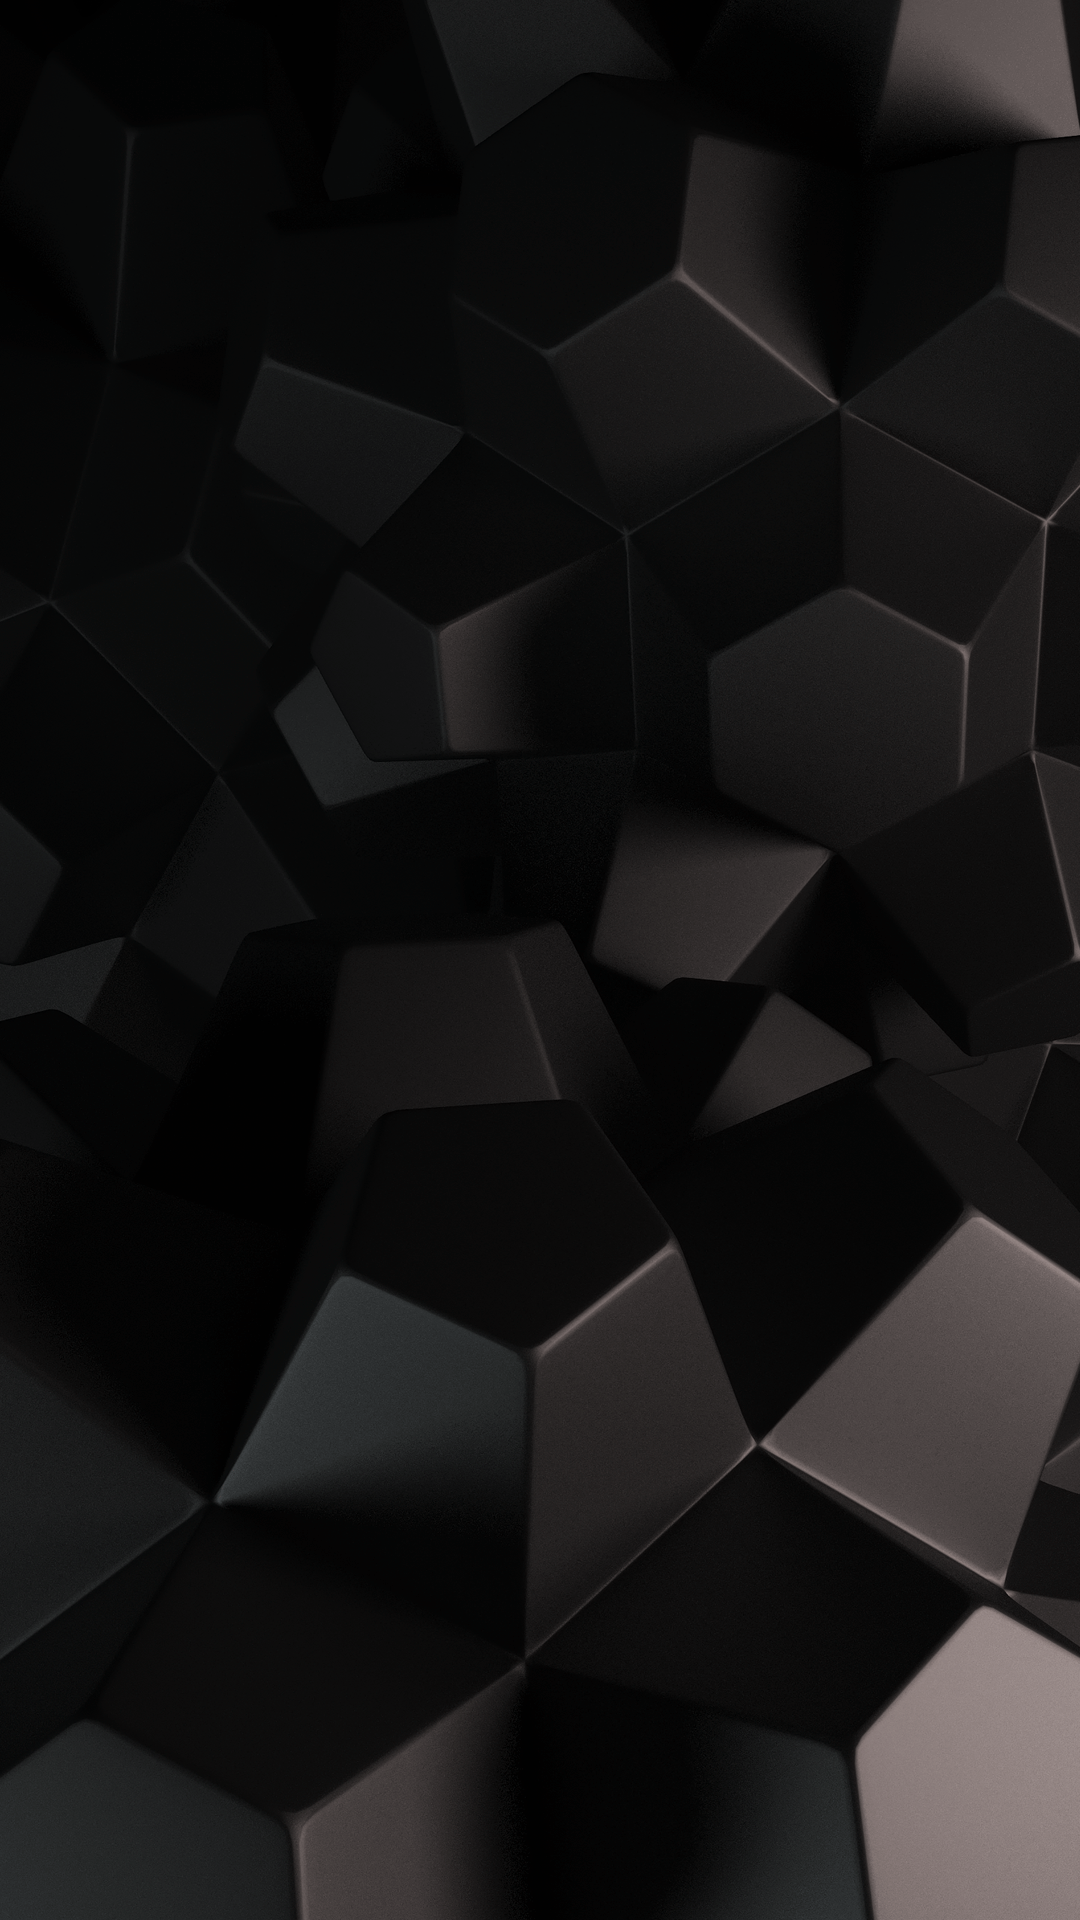 3d Wallpaper For Htc One M8 Black Abstract Htc One Wallpaper Best Htc One Wallpapers